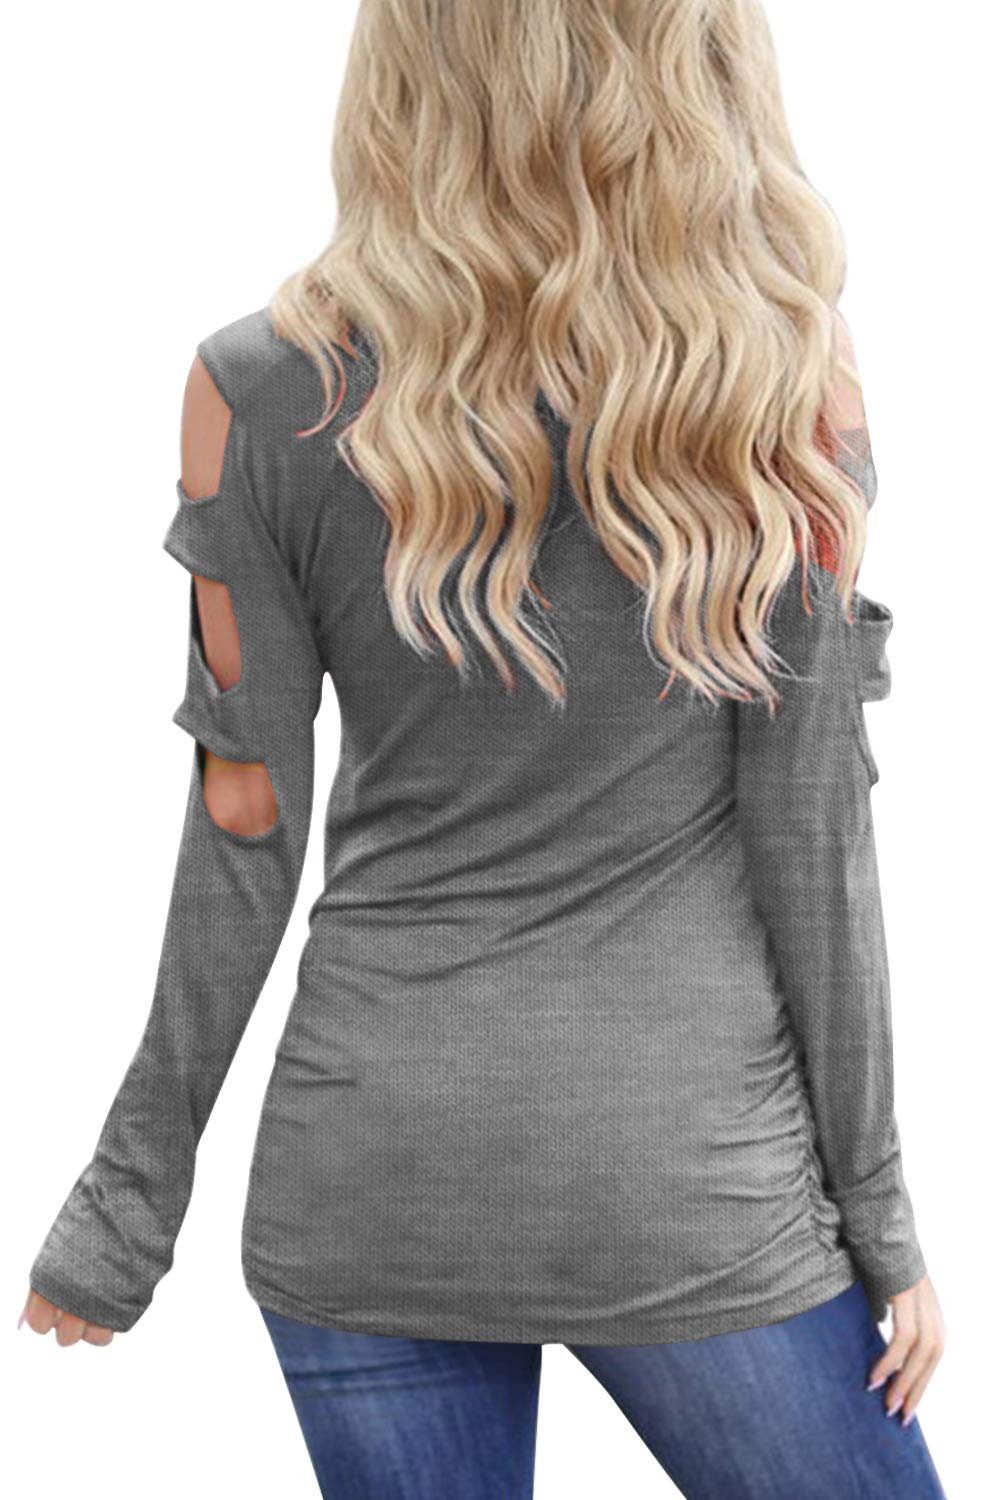 Eanklosco Women's Long Sleeve V Neck Cold Shoulder Cut Out T Shirts Casual Tunic Tops (XL, Grey)